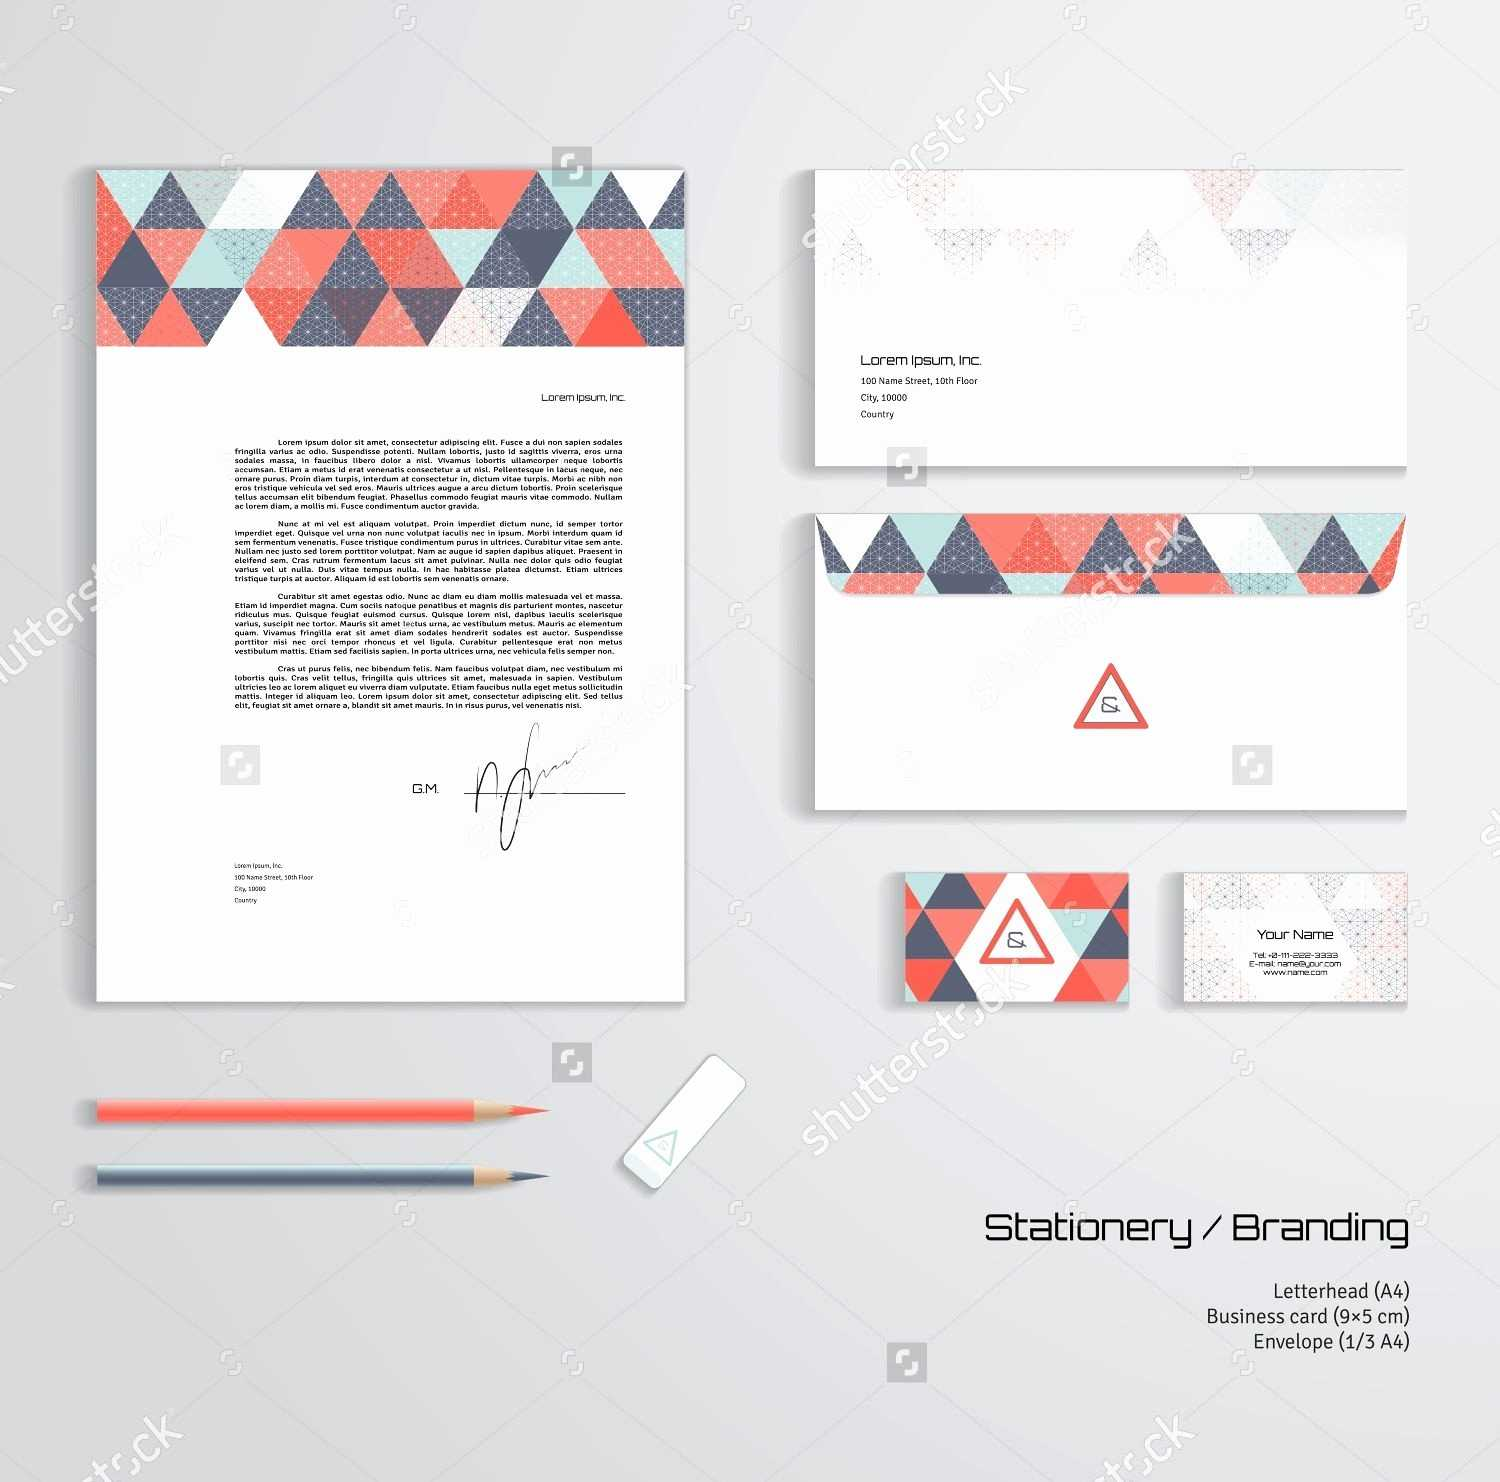 Business Card Template Open Office Free Printable Templates within Business Card Template Open Office